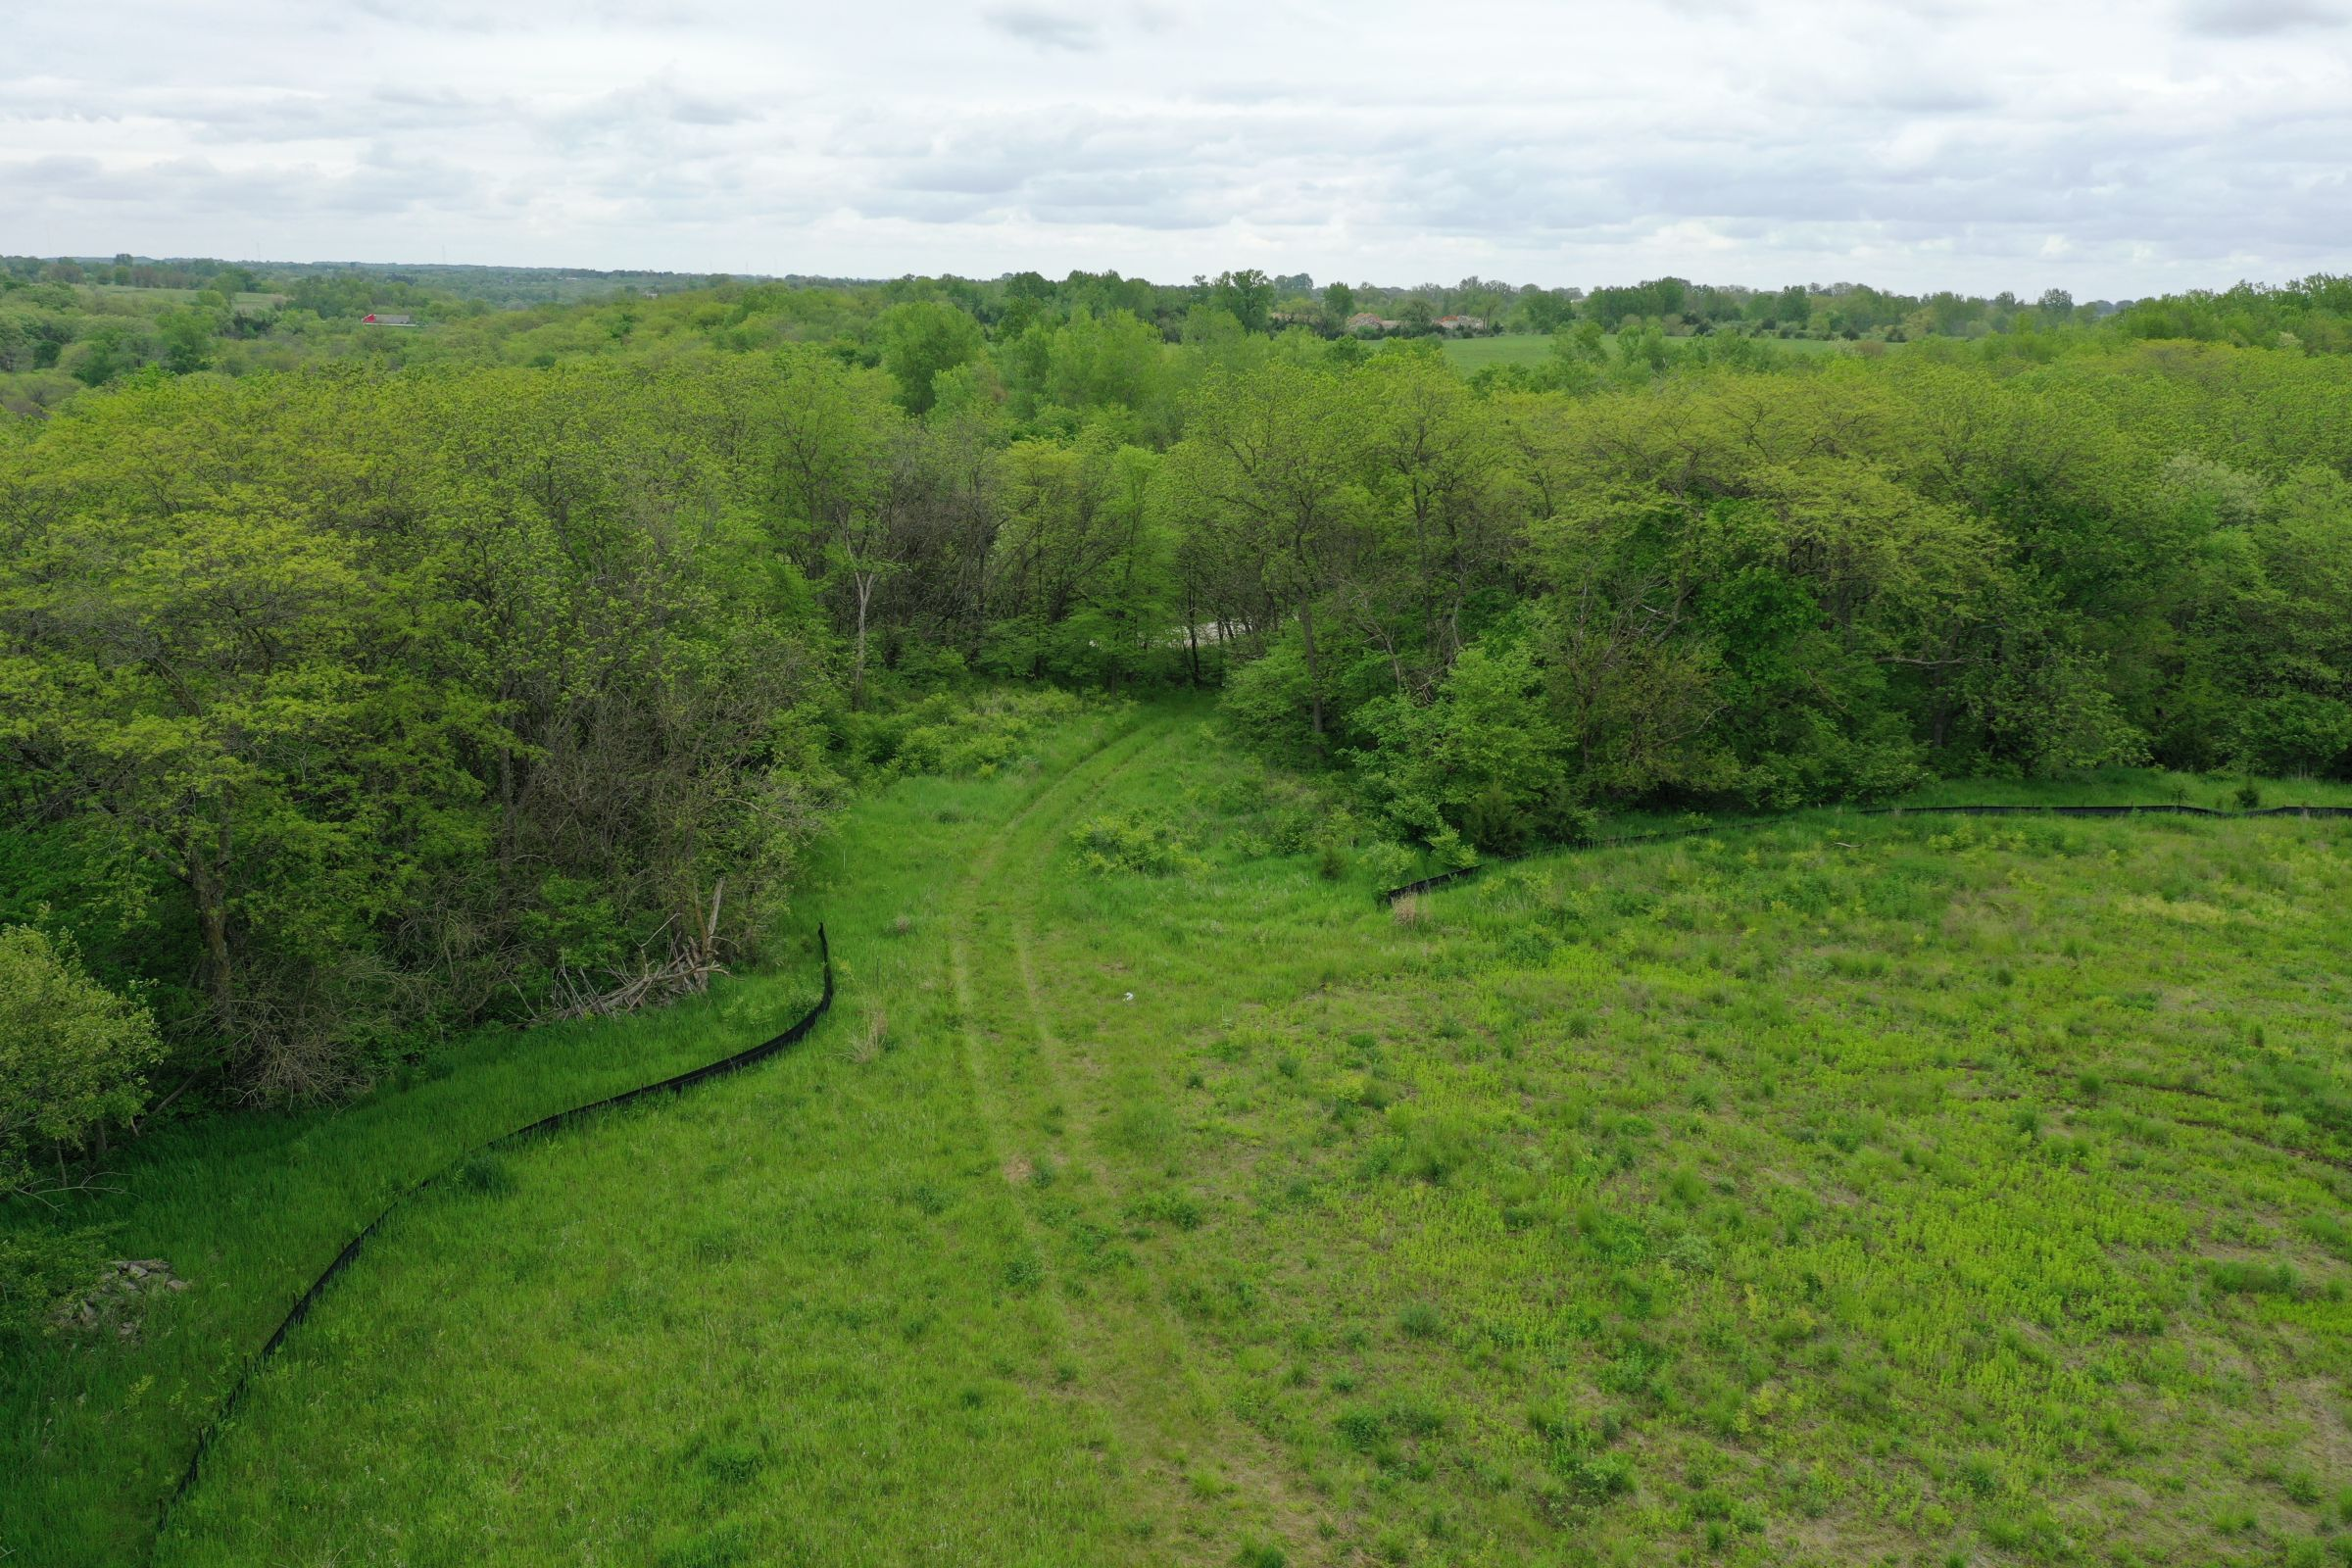 land-dallas-county-iowa-51-acres-listing-number-14894-3-2020-05-27-153223.JPG